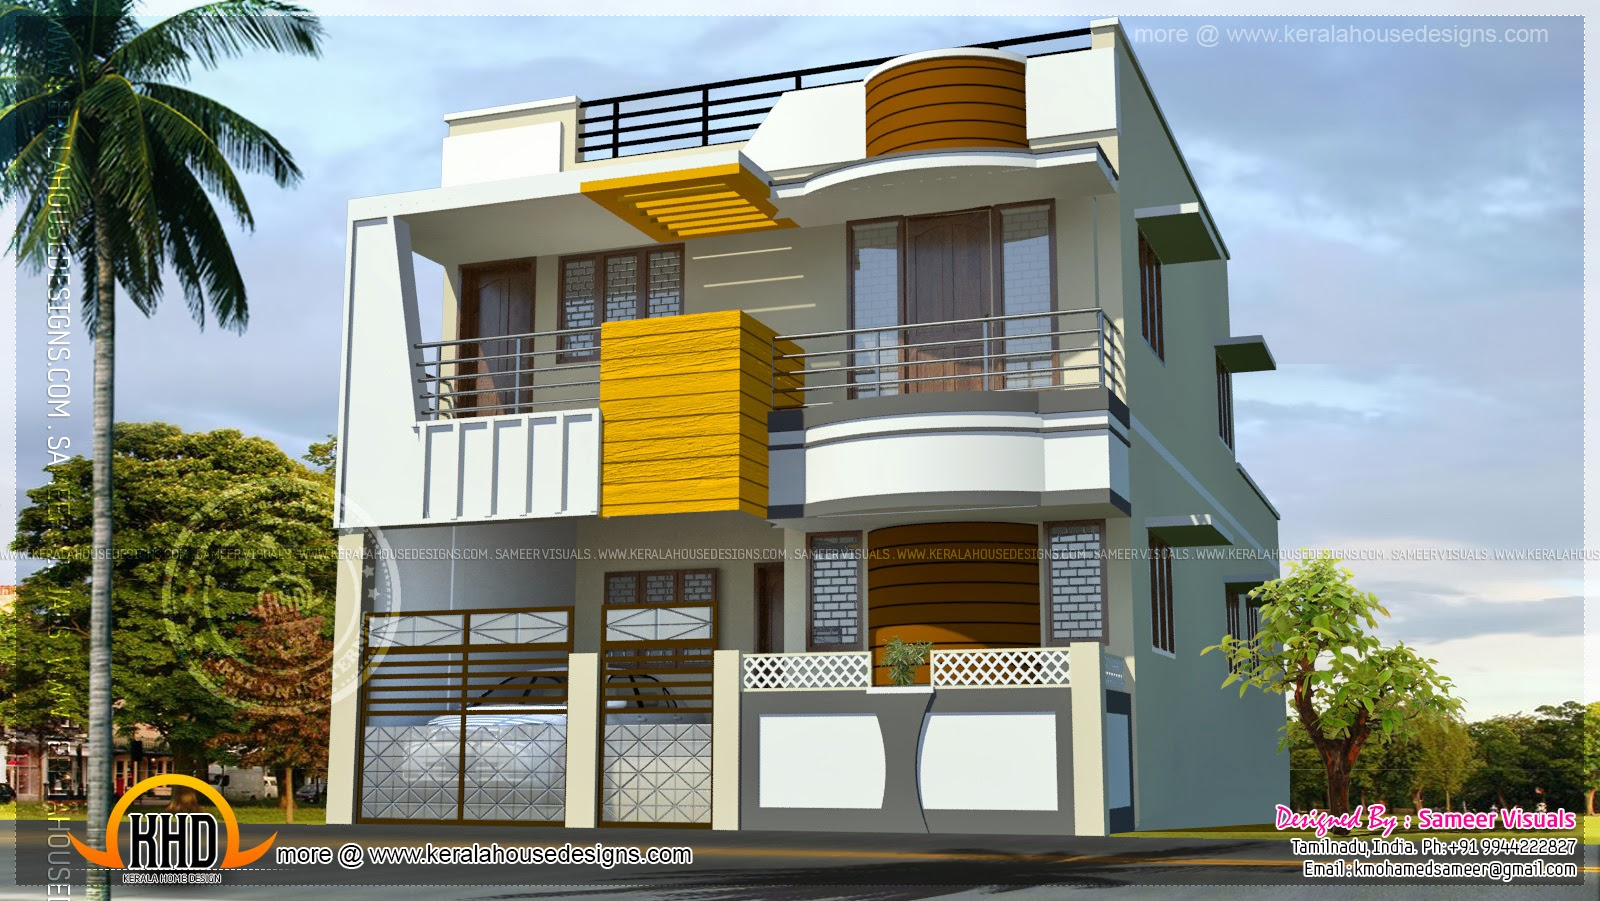 January 2014 kerala home design and floor plans for Building plans for homes in india